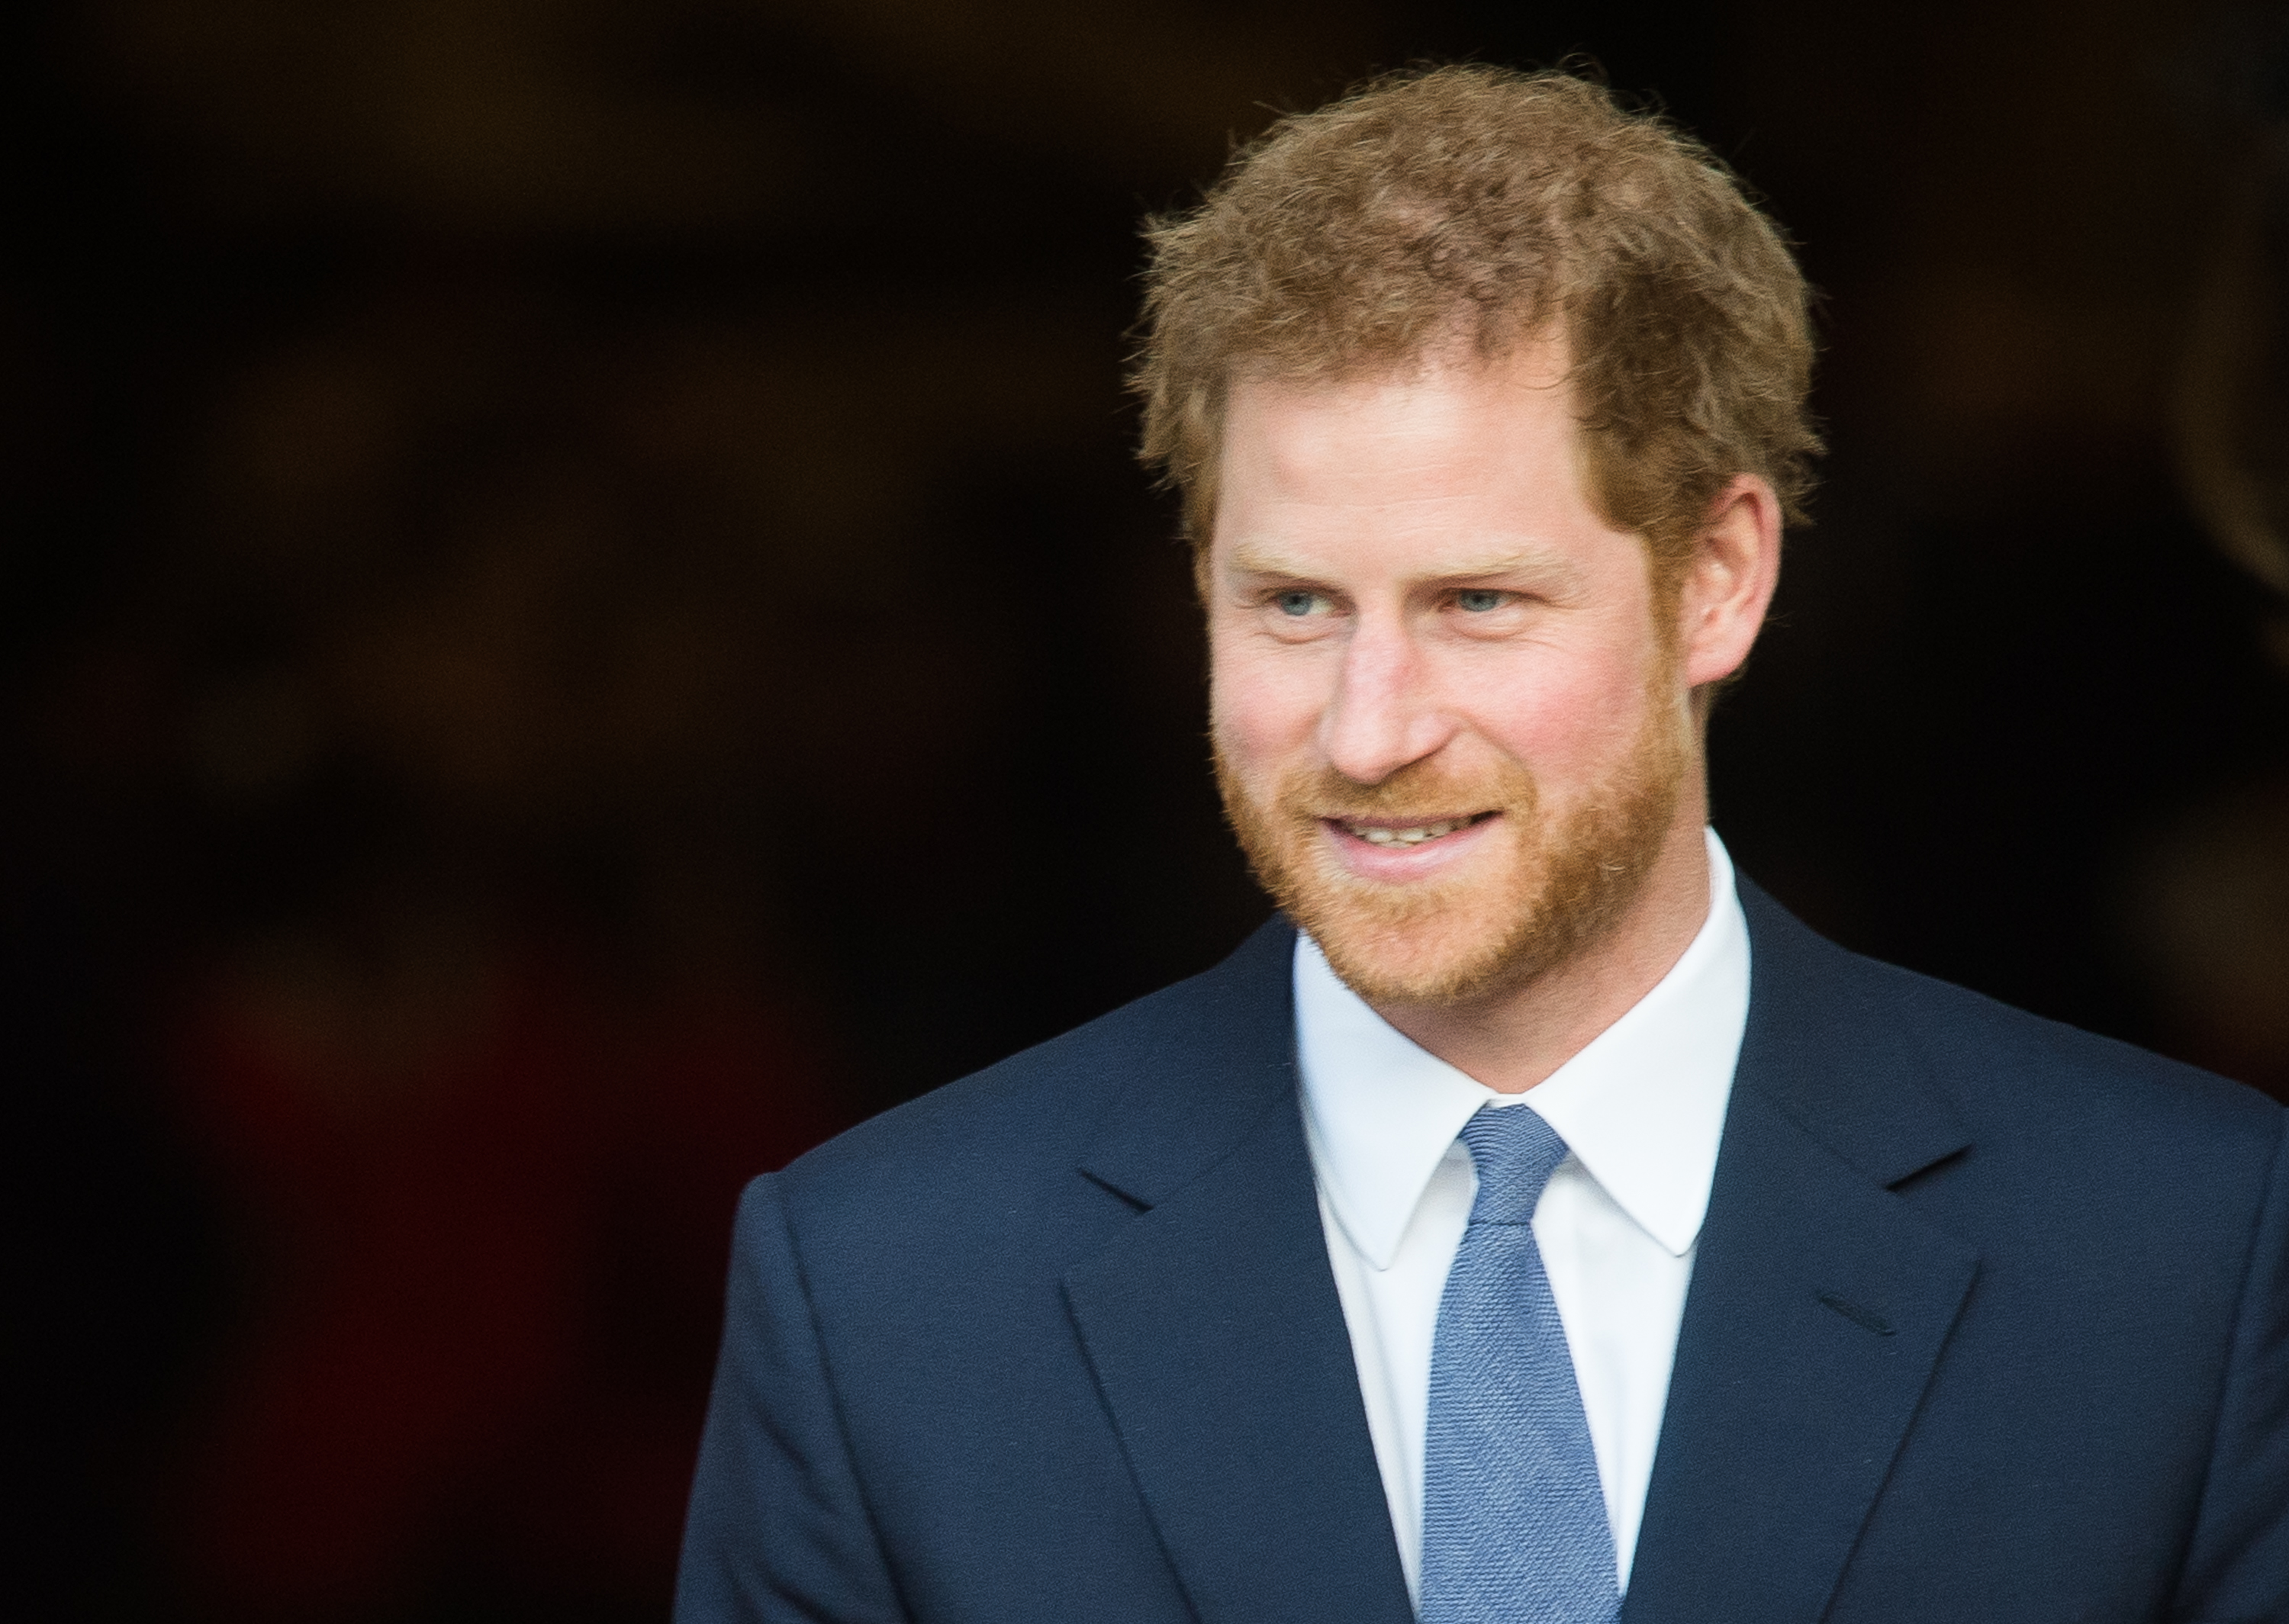 LONDON, ENGLAND - MARCH 13:  Prince Harry attends Commonwealth day celebrations service and reception at Westminster Abbey on March 13, 2017 in London, England.  (Photo by Samir Hussein/WireImage)